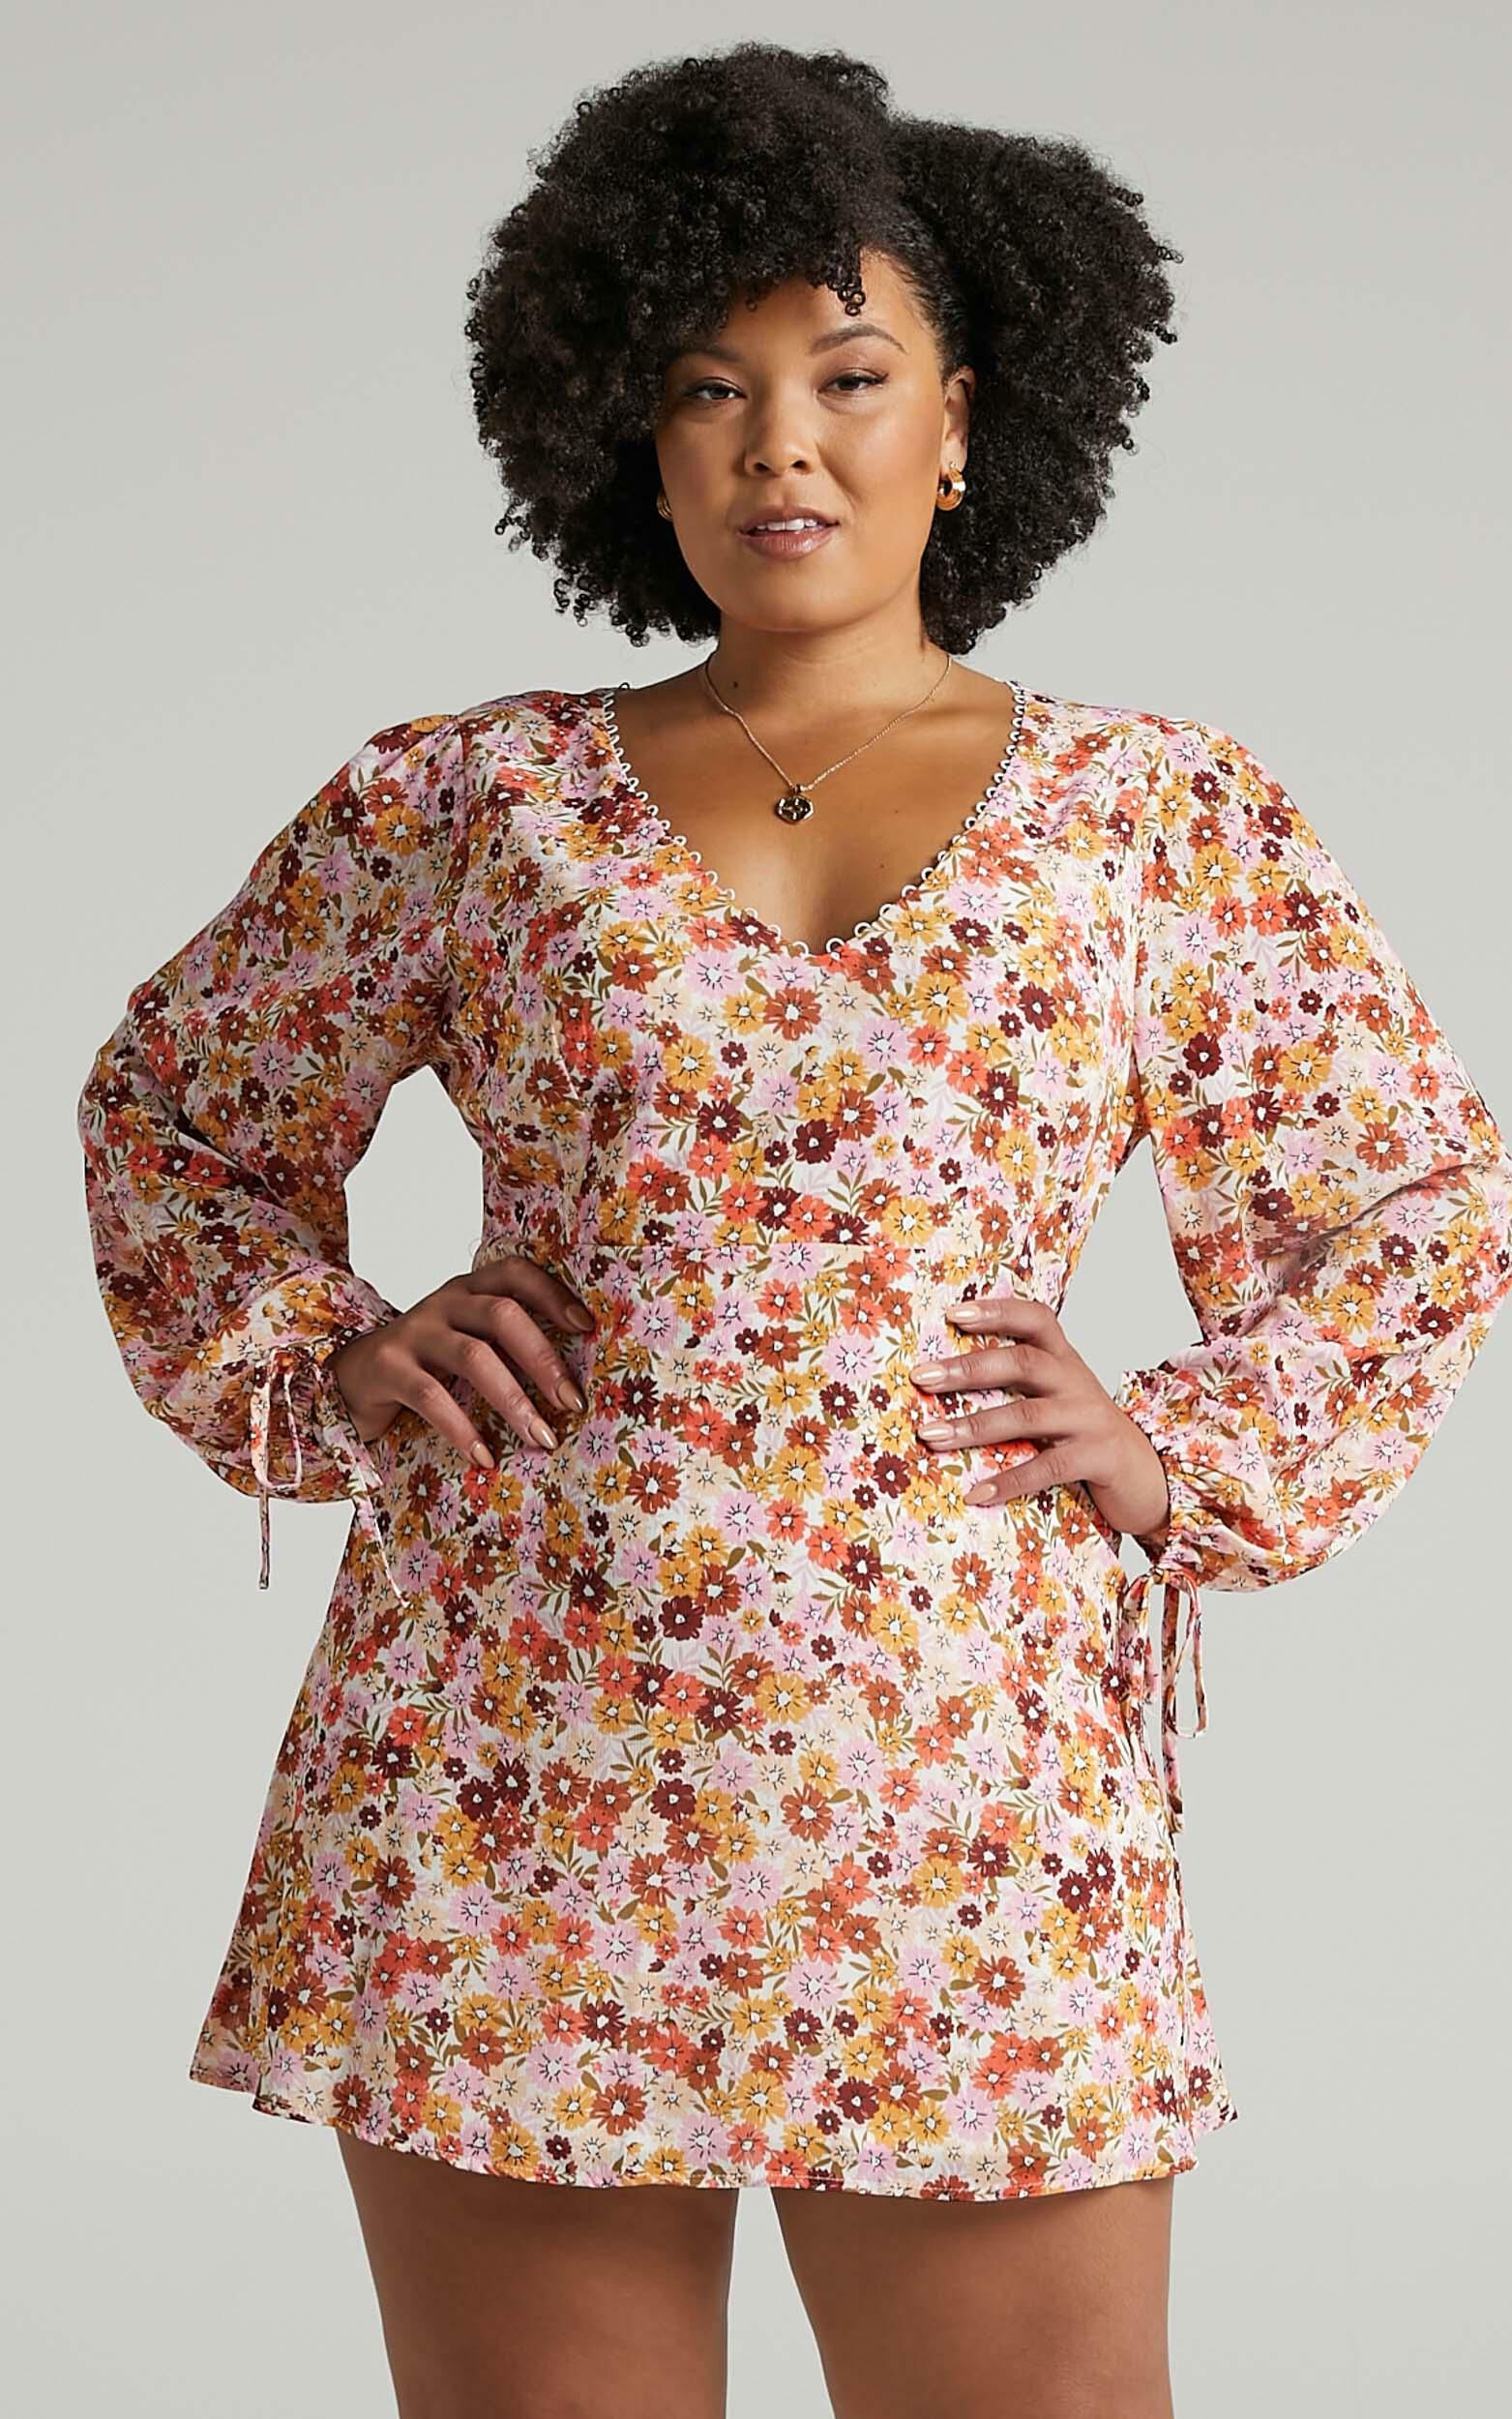 Andrea Long Sleeve Mini Dress in Sahara Ditsy Floral - 06, MLT1, super-hi-res image number null